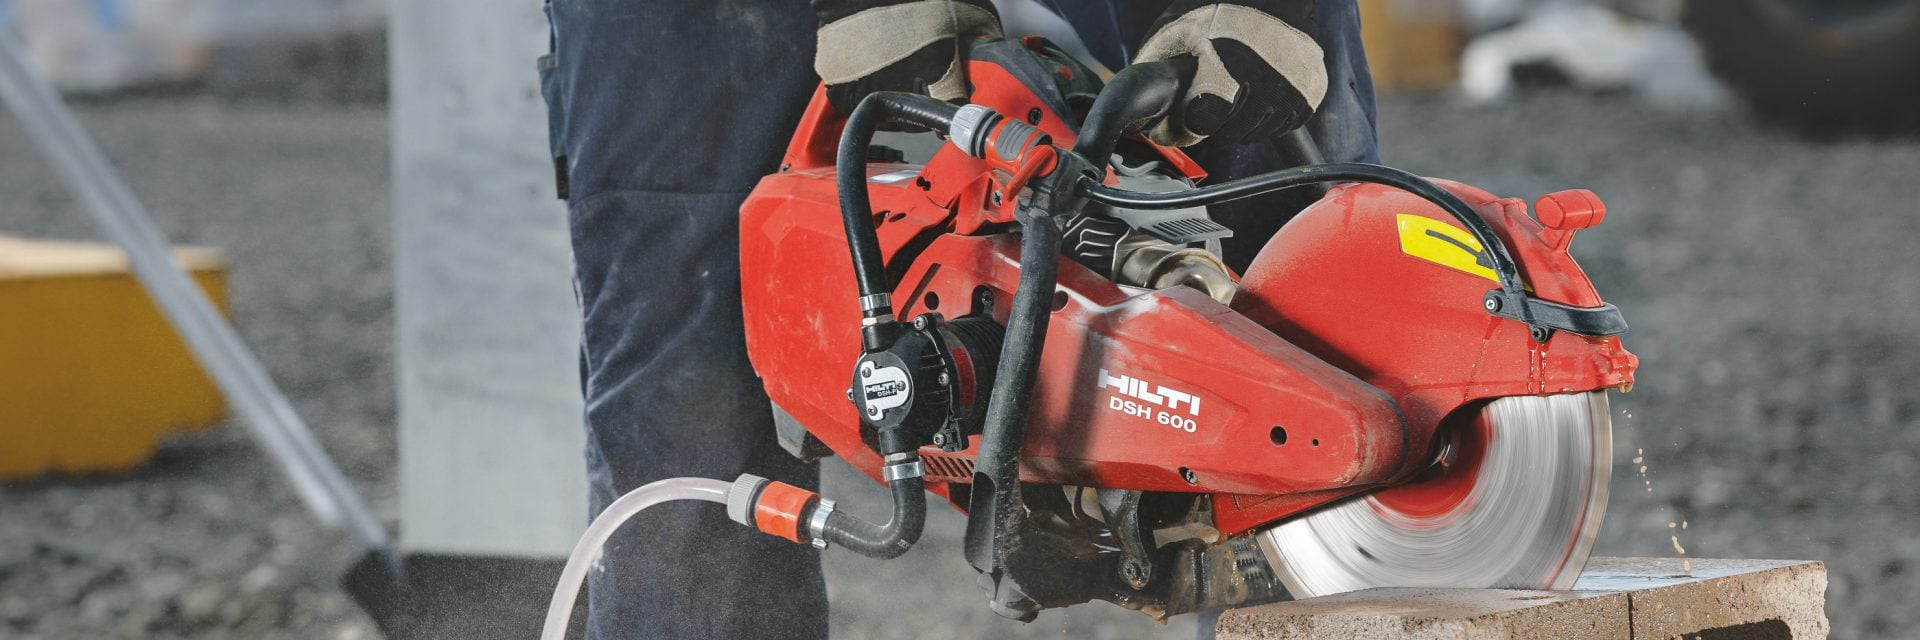 DSH 600-X gas saw for concrete cutting